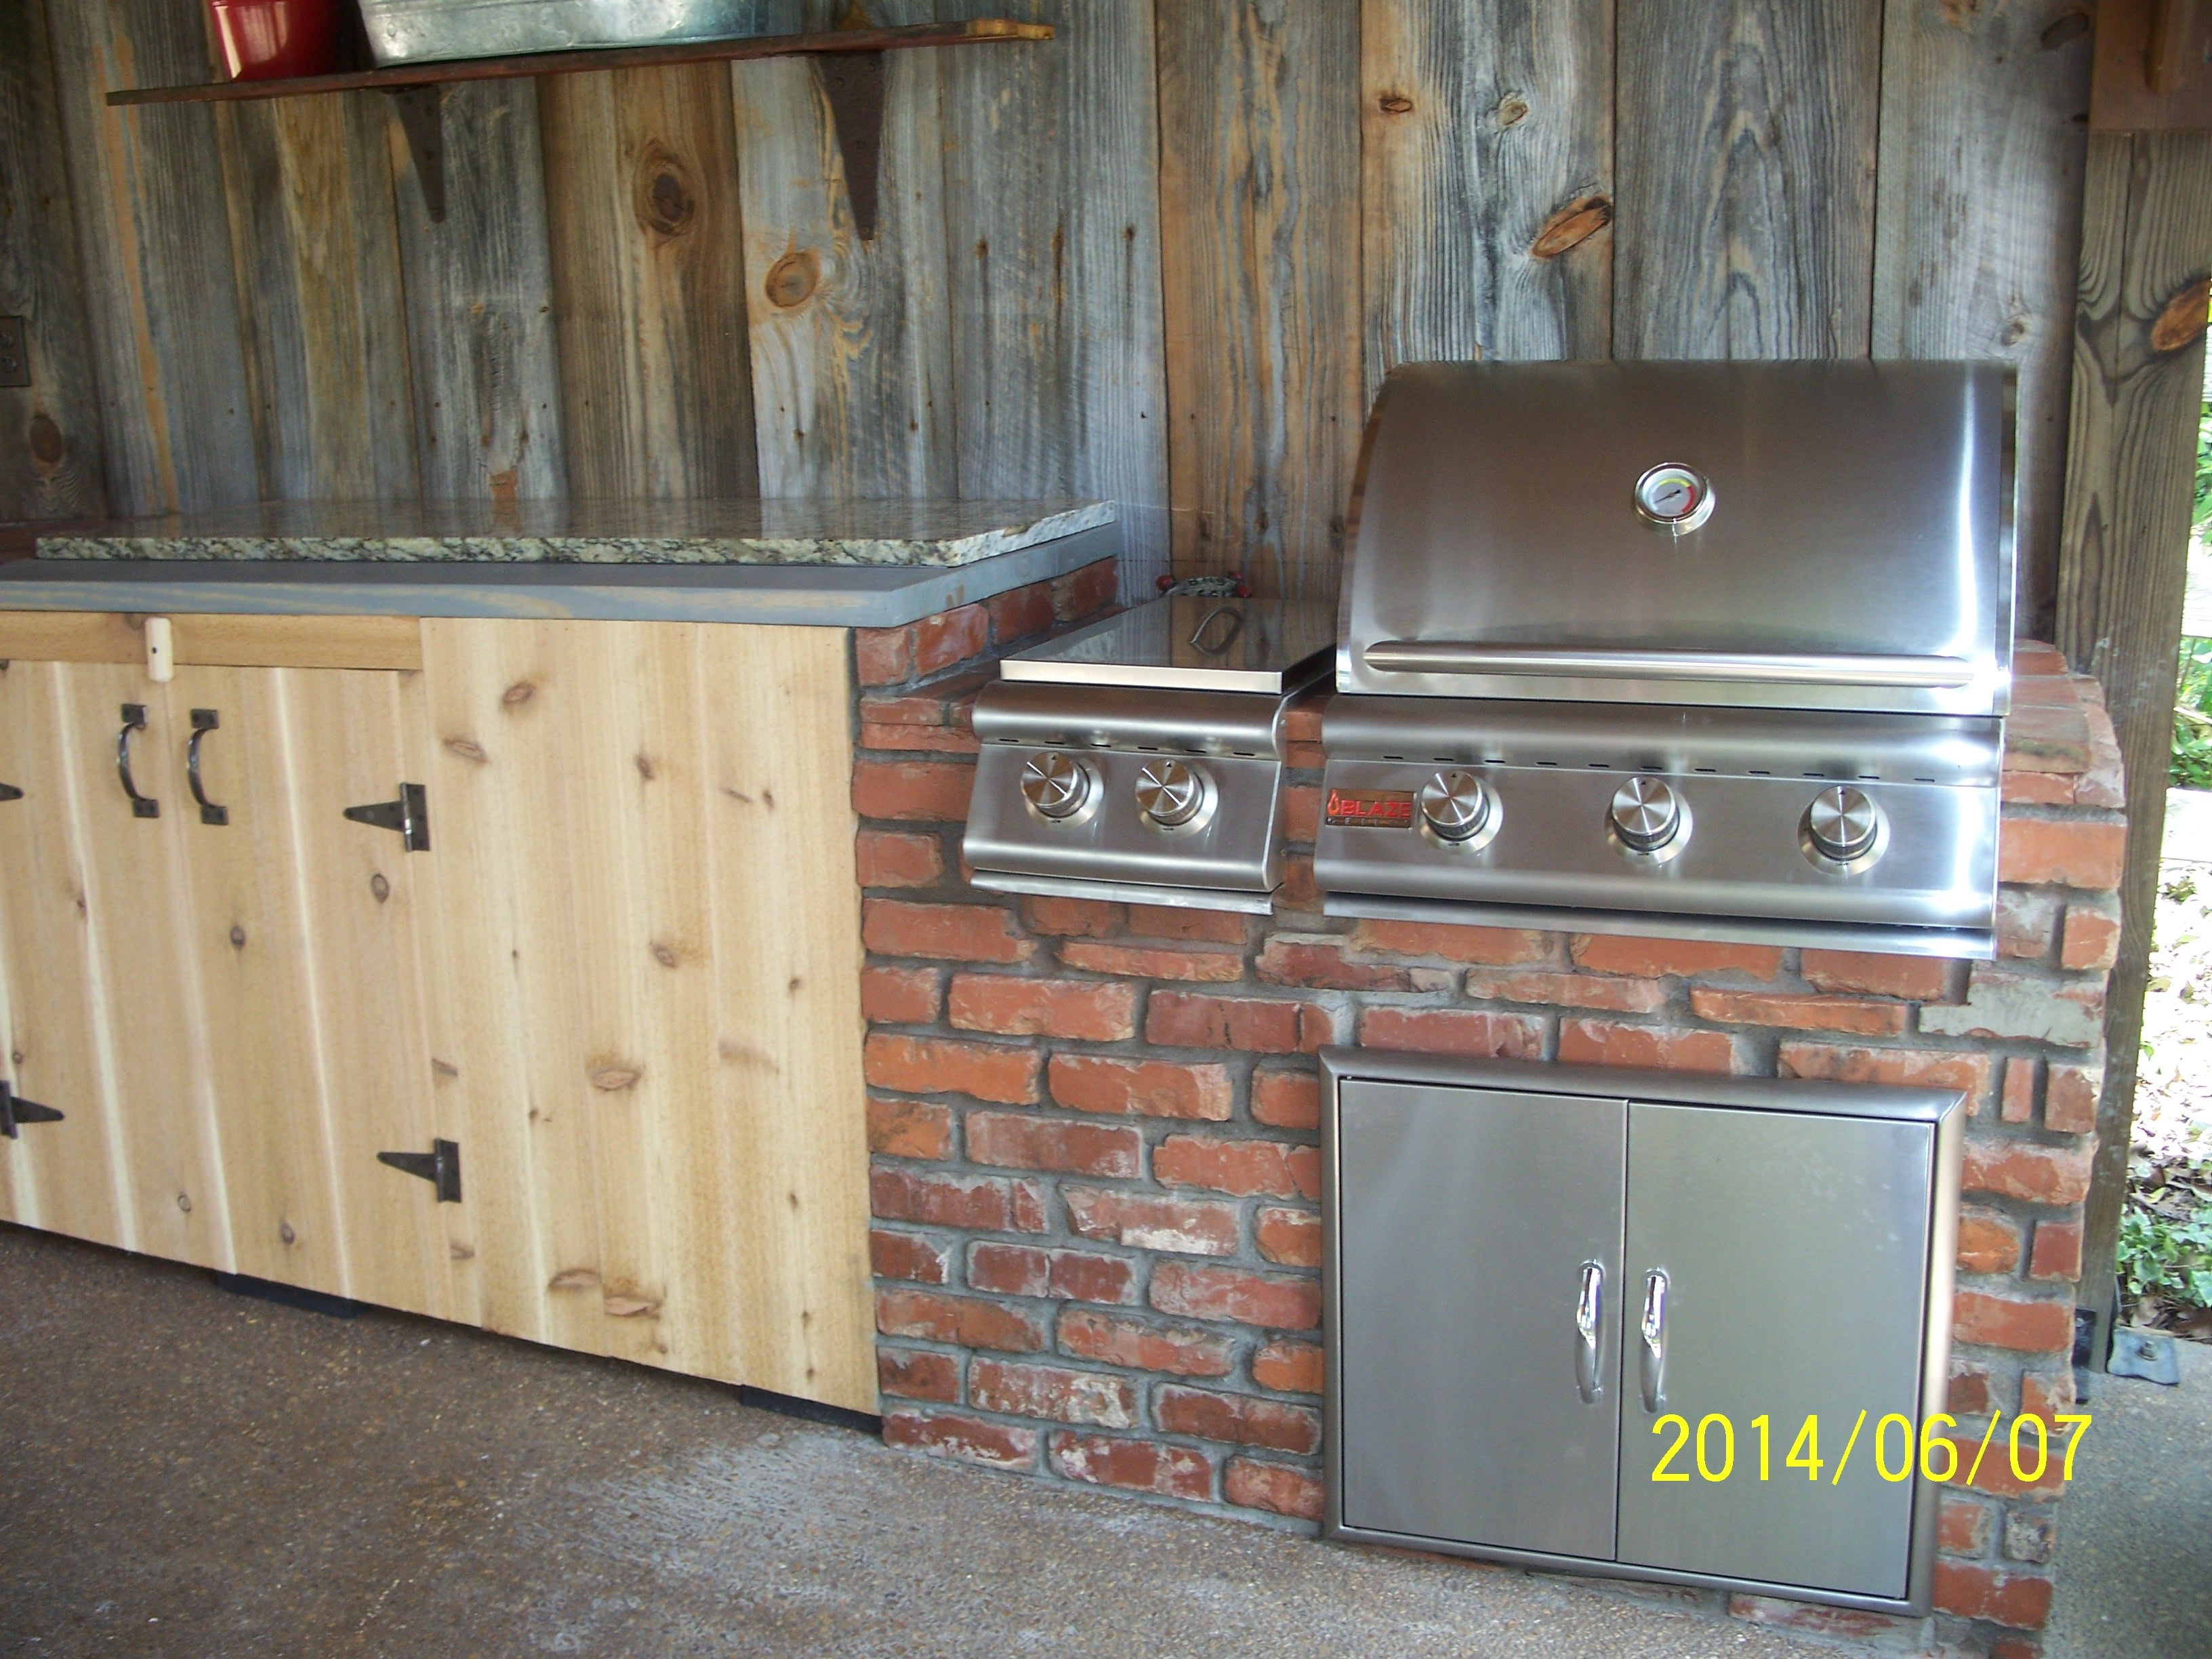 Simple Outdoor Kitchen This Is A Simple Outdoor Kitchen With A 3 Burner Blaze Grill And